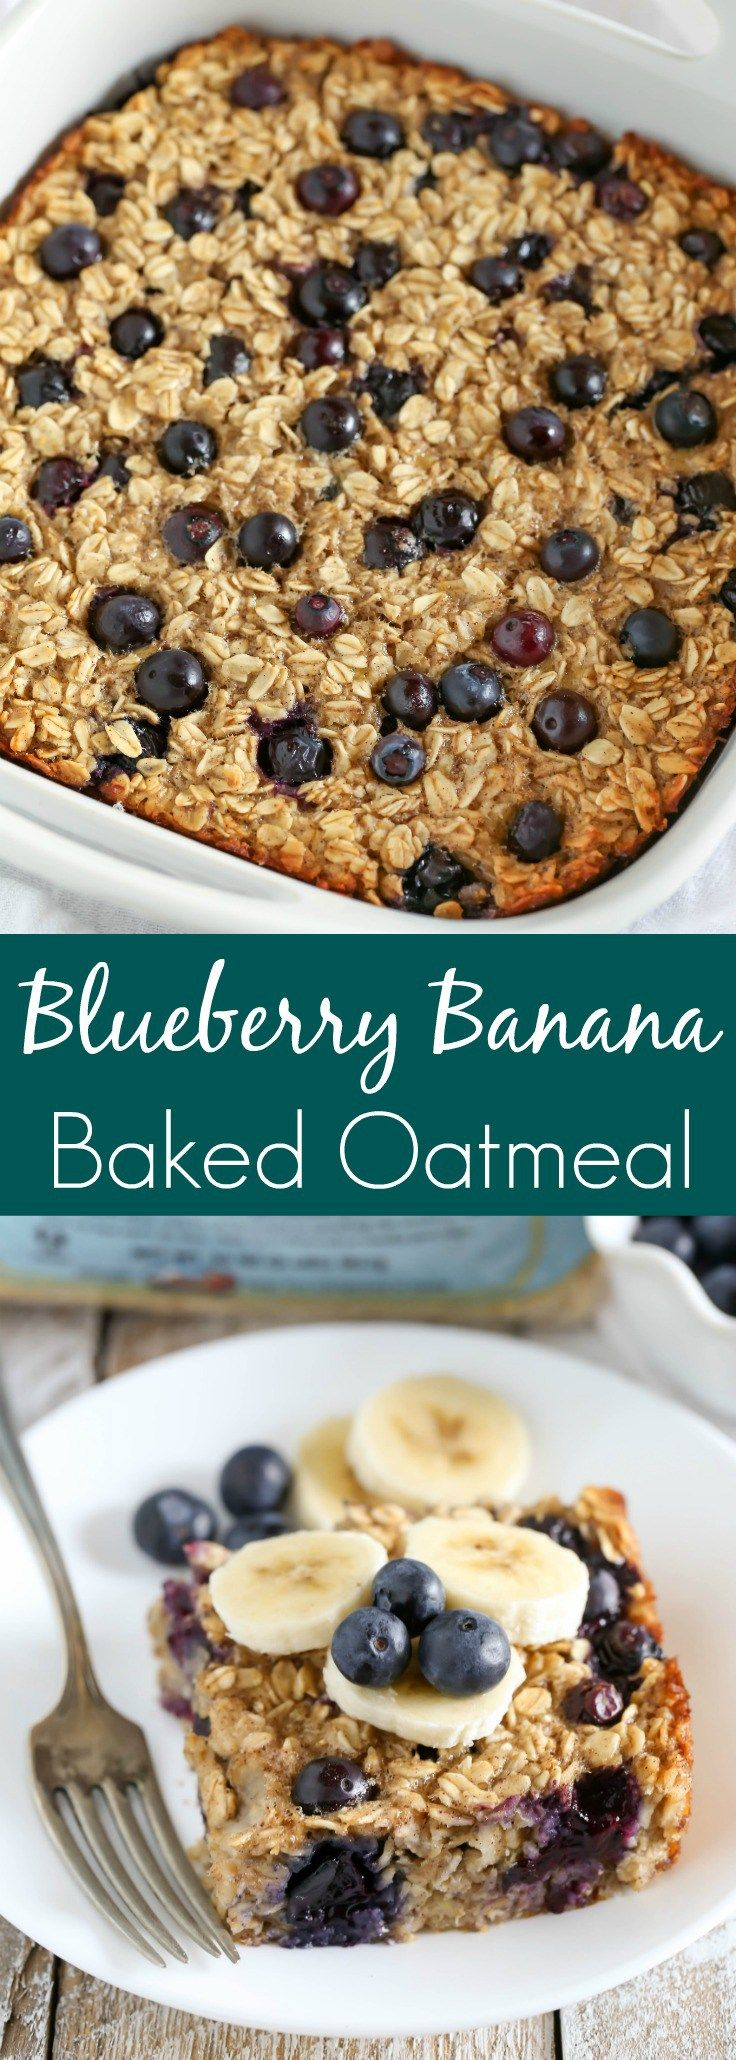 This Blueberry Banana Baked Oatmeal is easy to make and perfect for a quick, easy, healthy breakfast during the week! #ad @bobsredmill #BRMOats